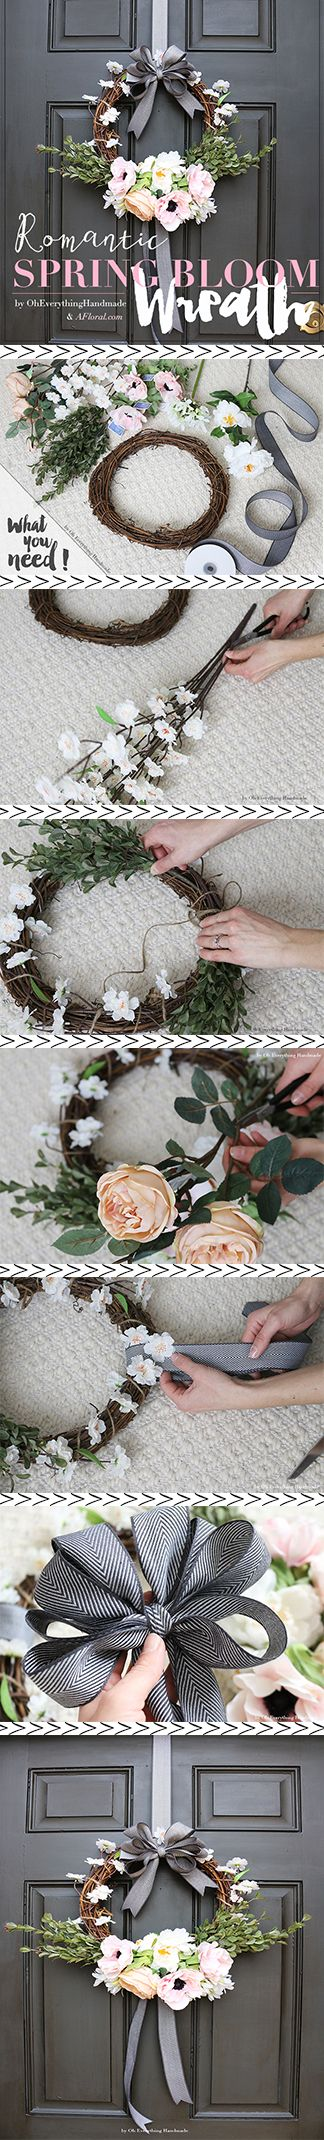 Romantic DIY Spring Bloom Wreath Tutorial via oh everything handmade